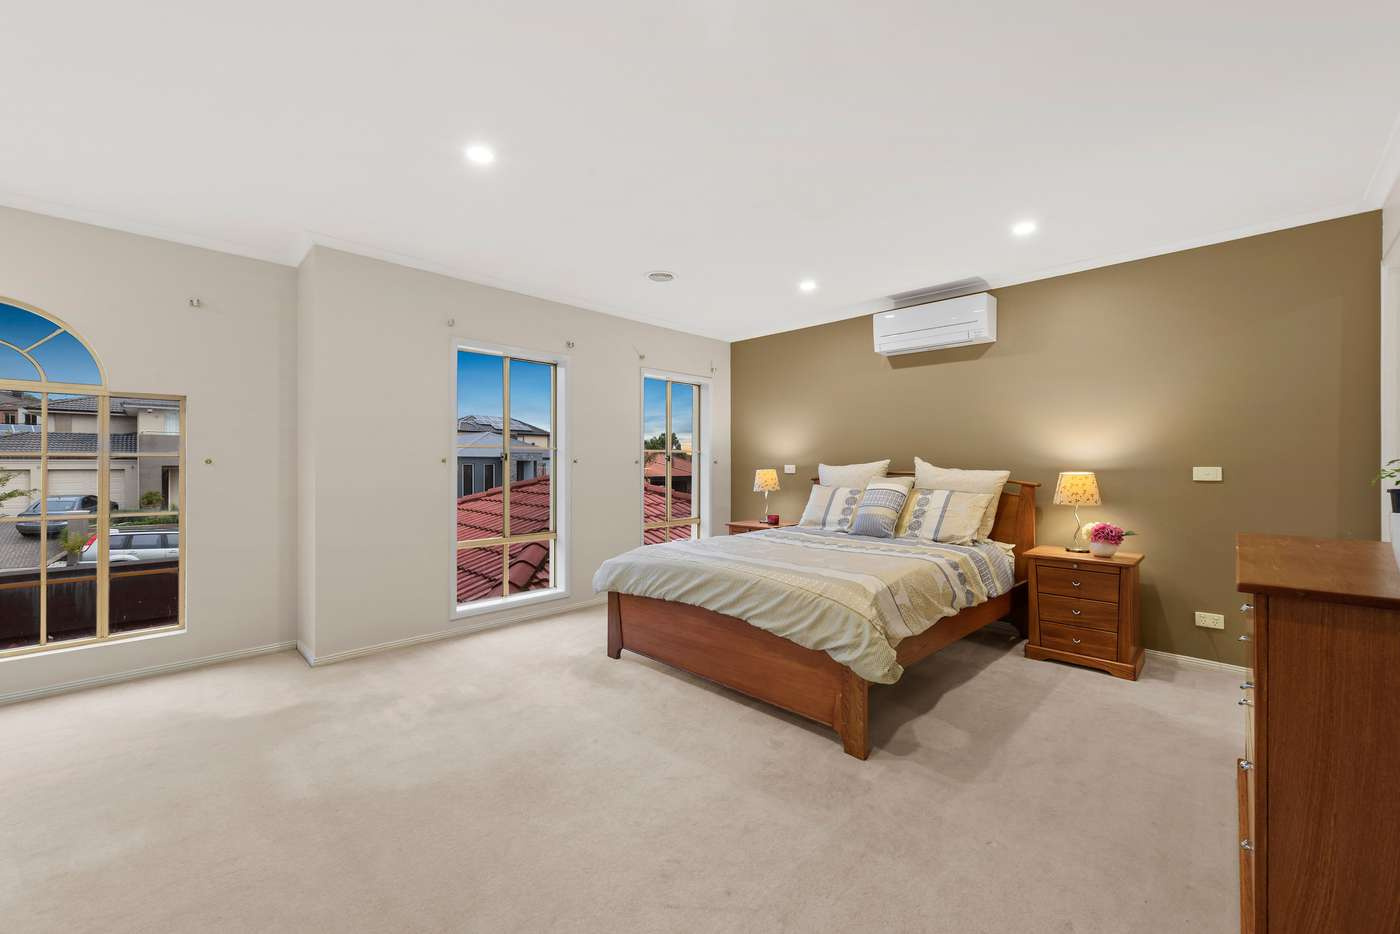 Sixth view of Homely house listing, 23 Kilcatten Rise, Rowville VIC 3178